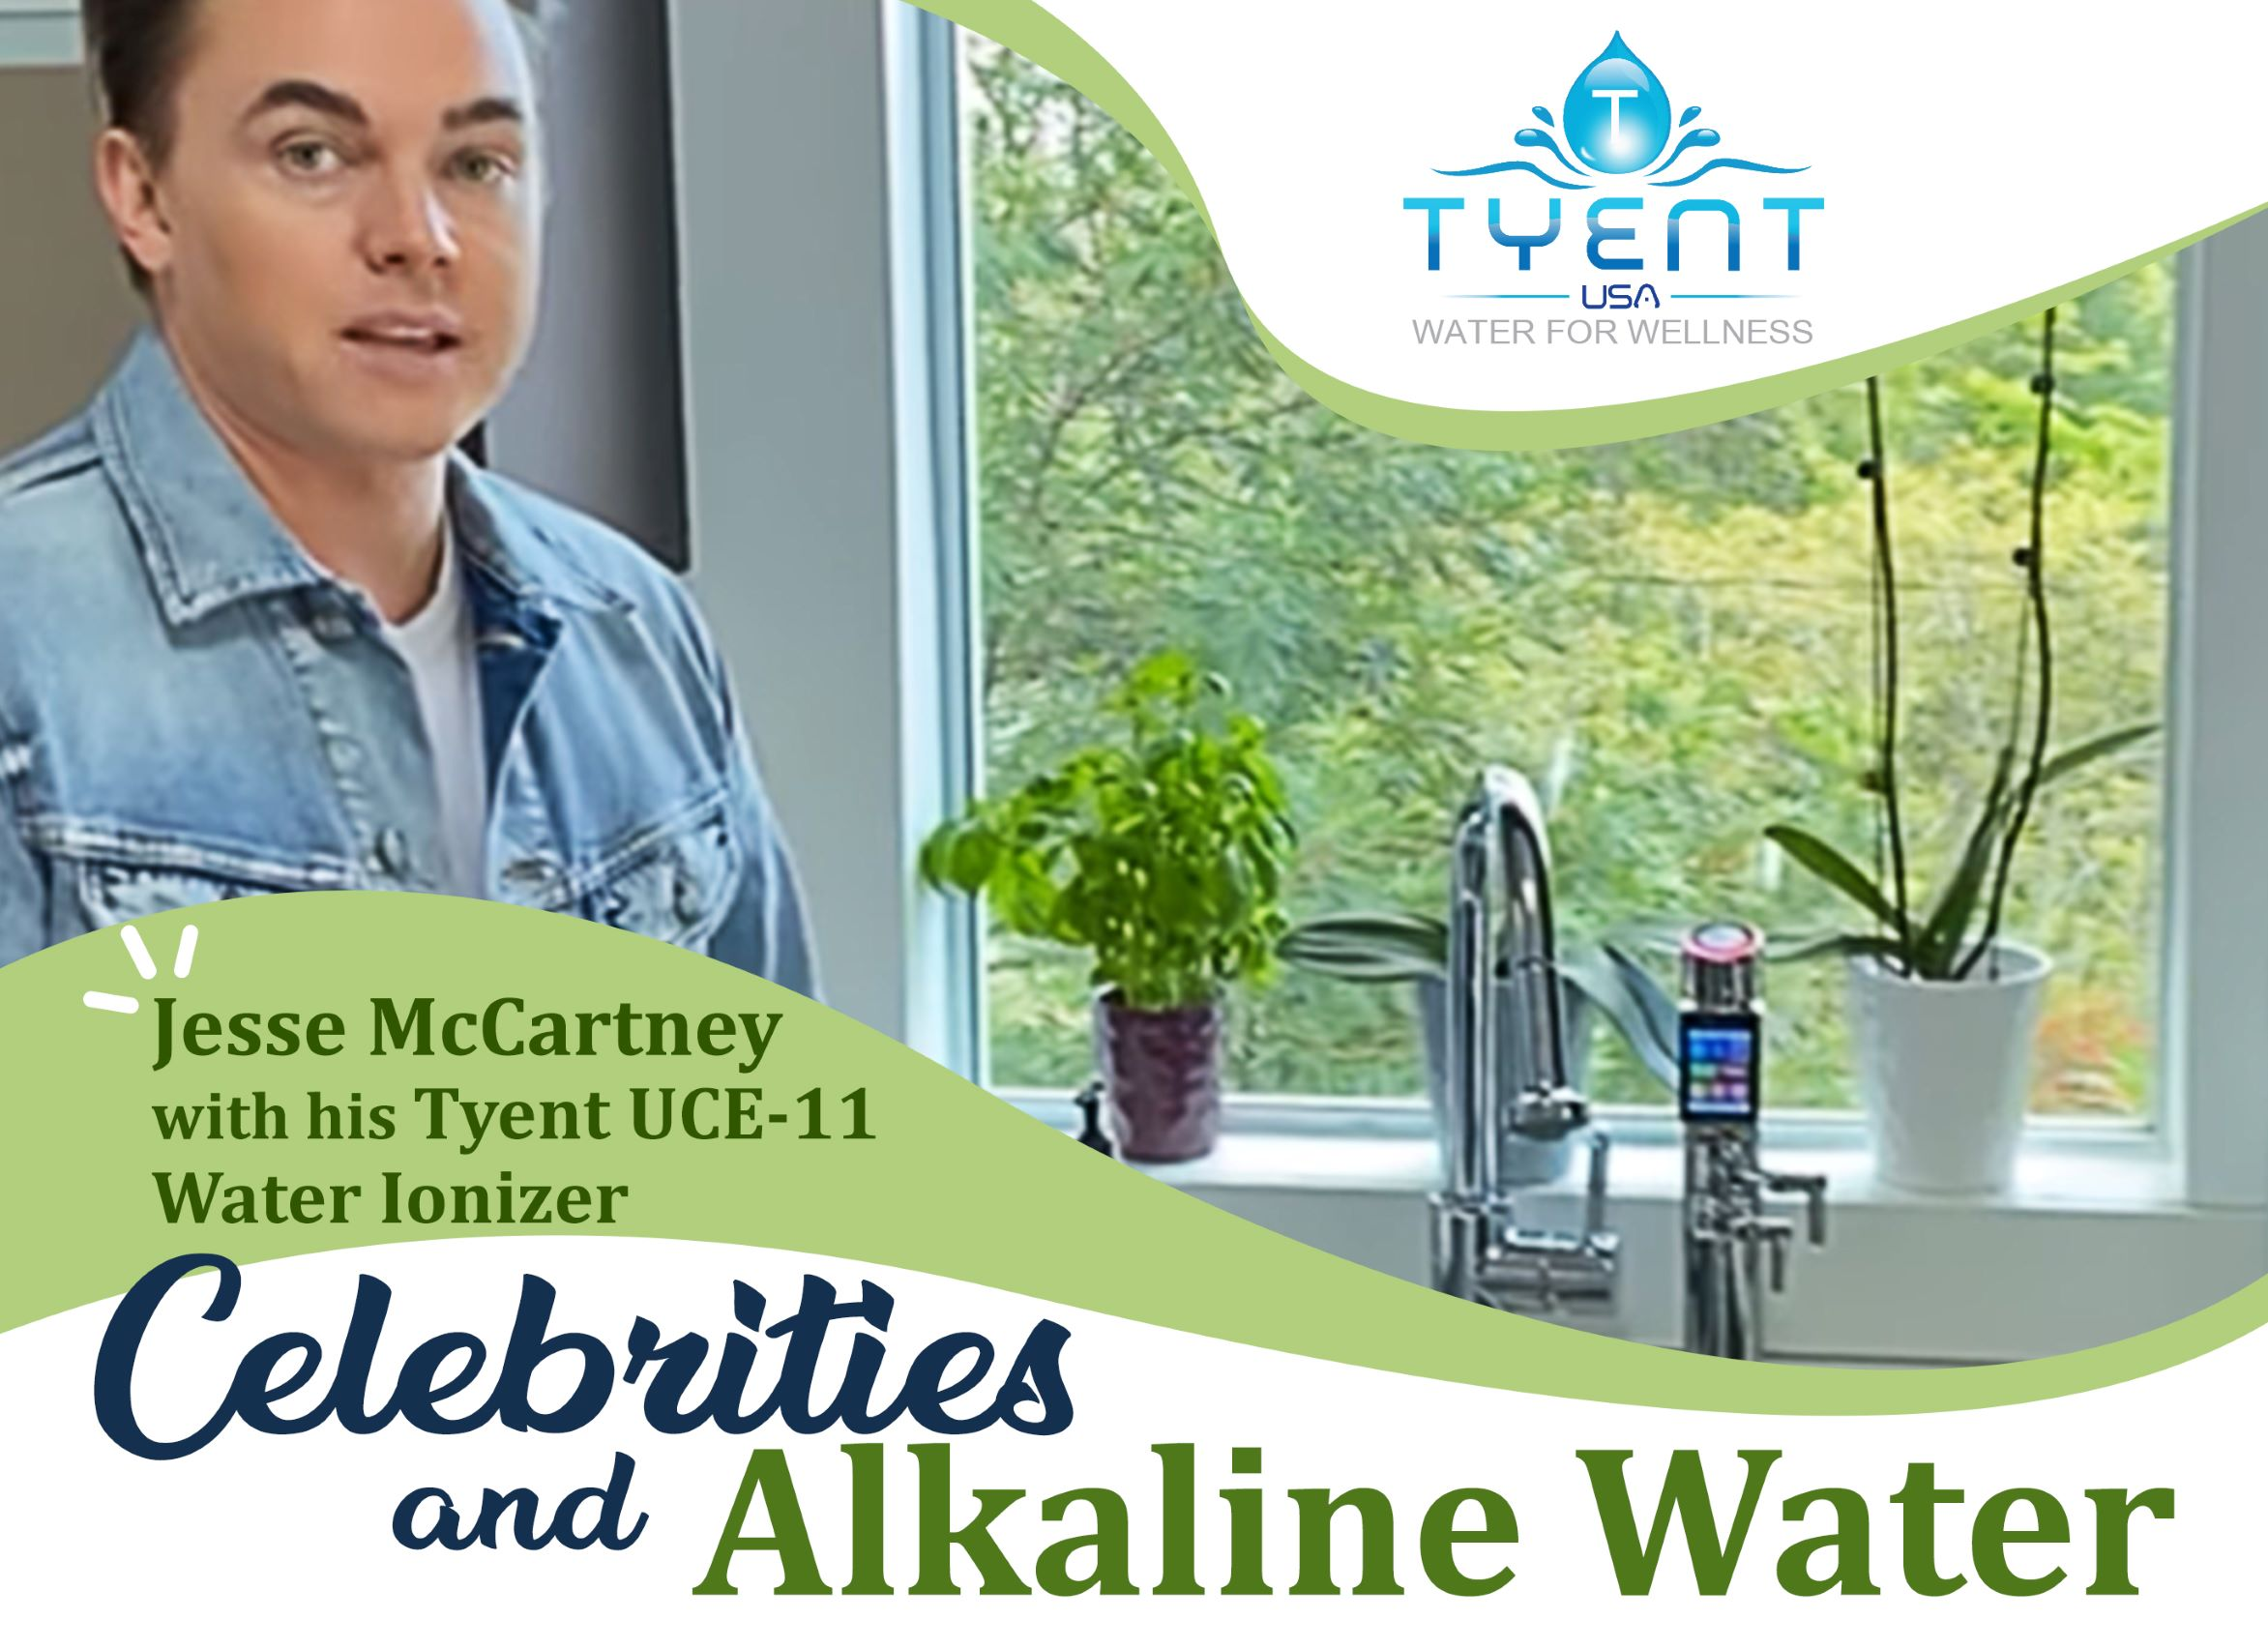 Celebrities and Alkaline Water